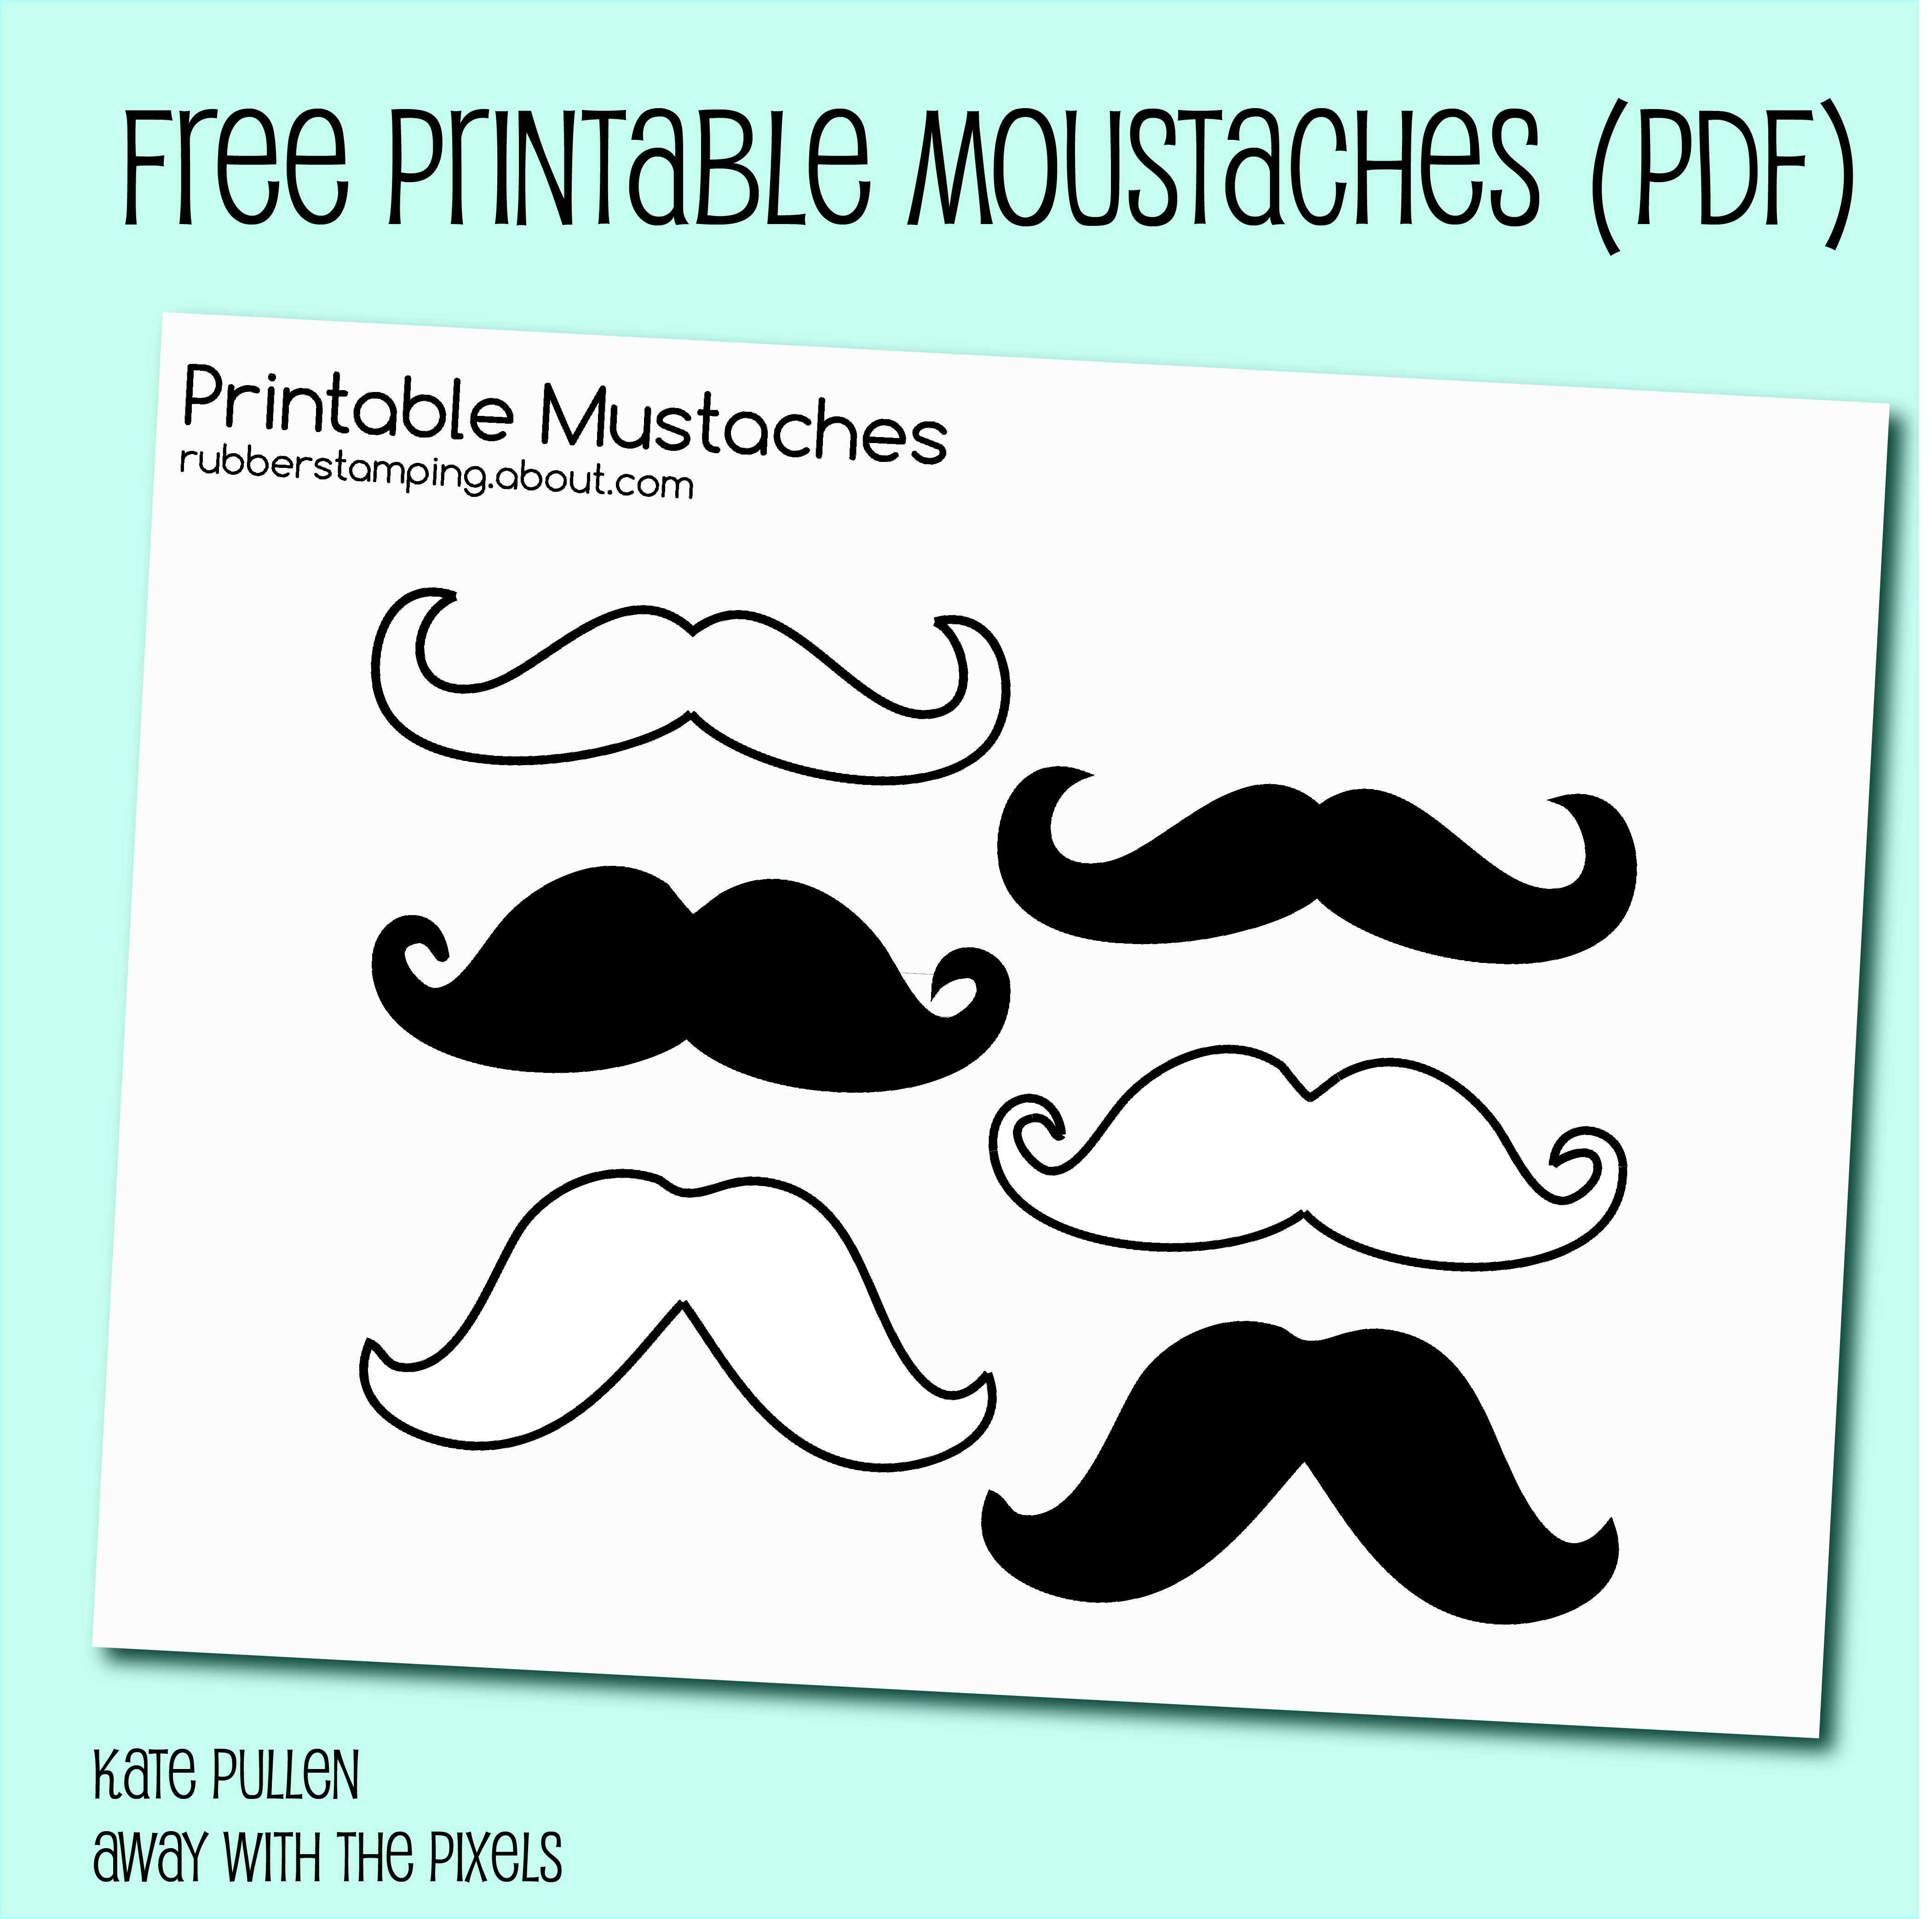 free printable mustache images